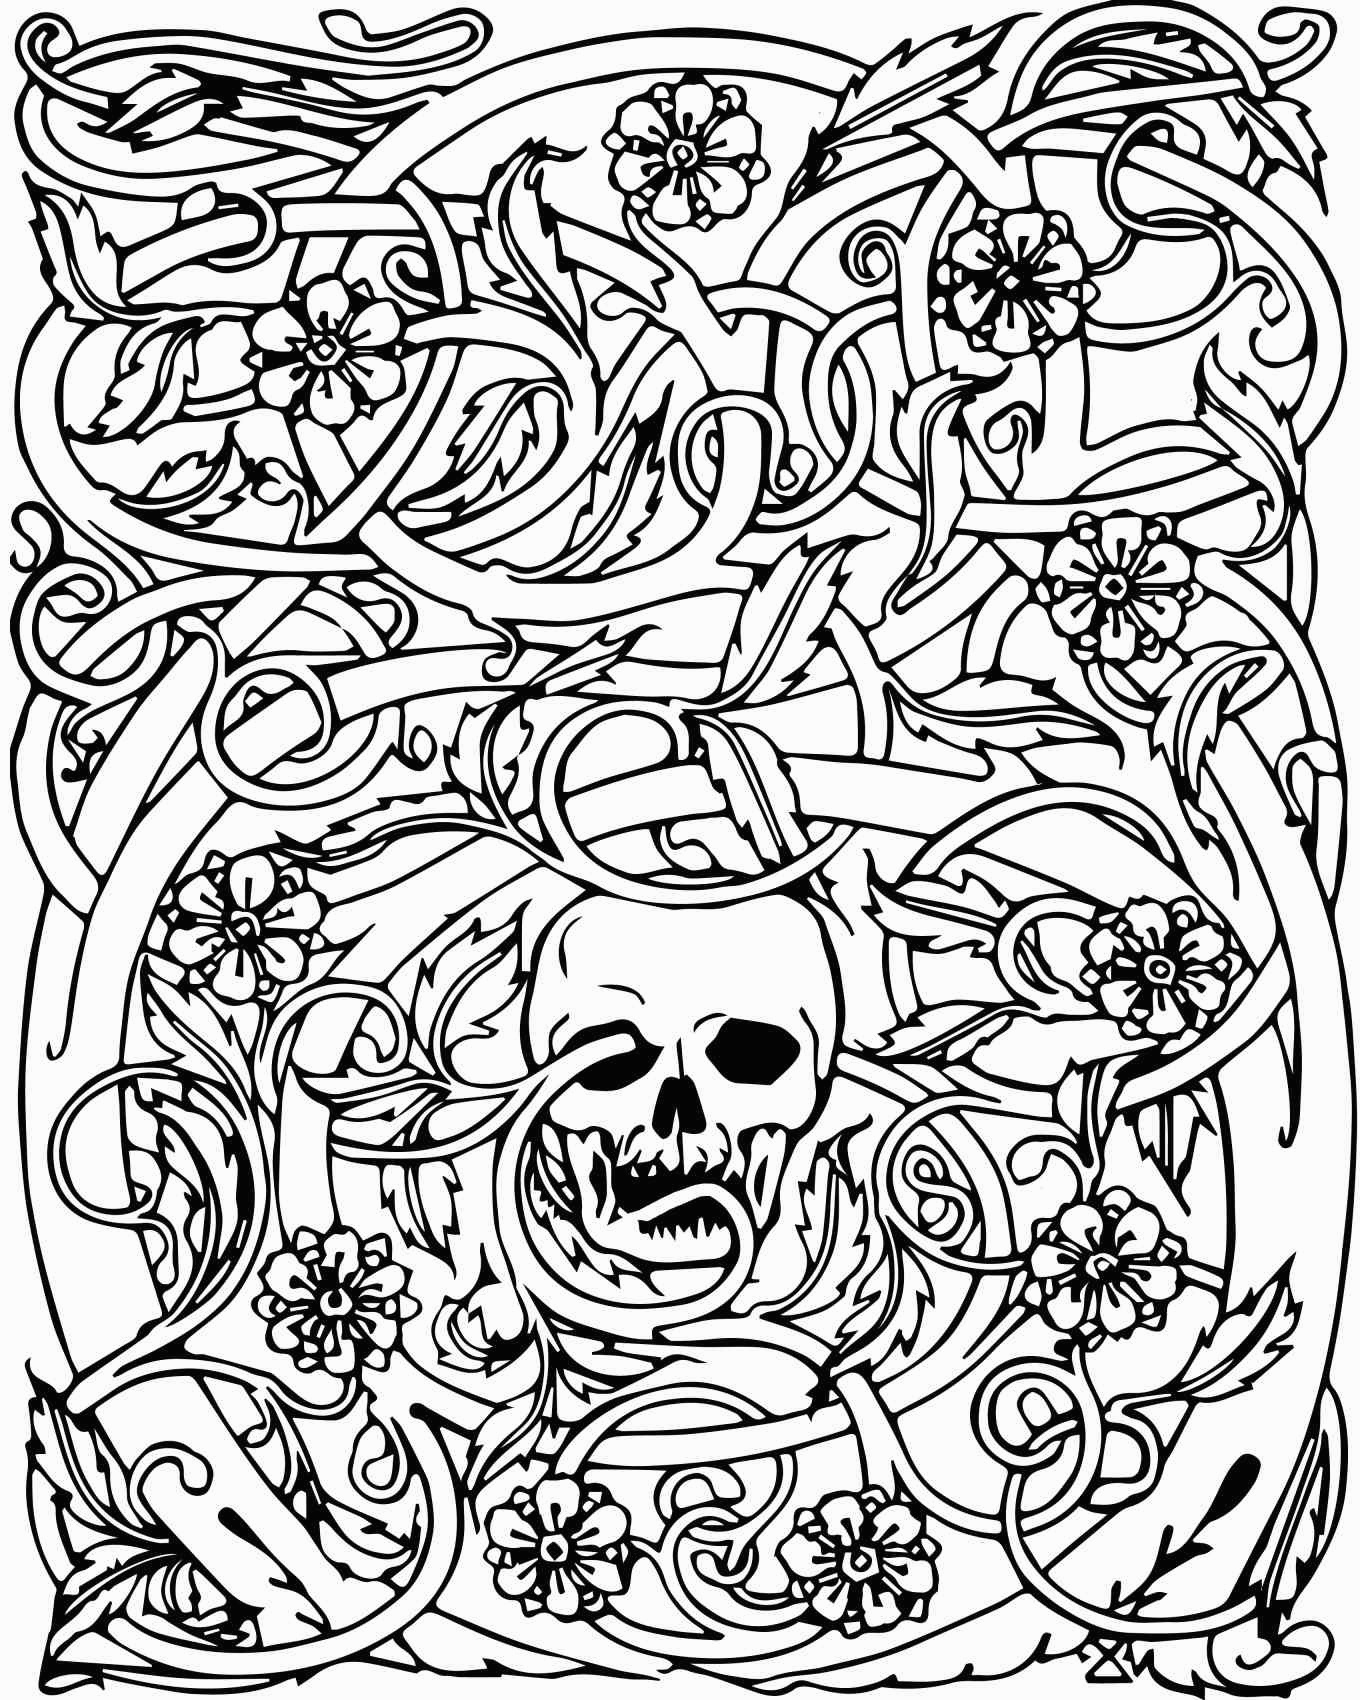 coloring skulls coloring pages skull free printable coloring pages skulls coloring 1 1